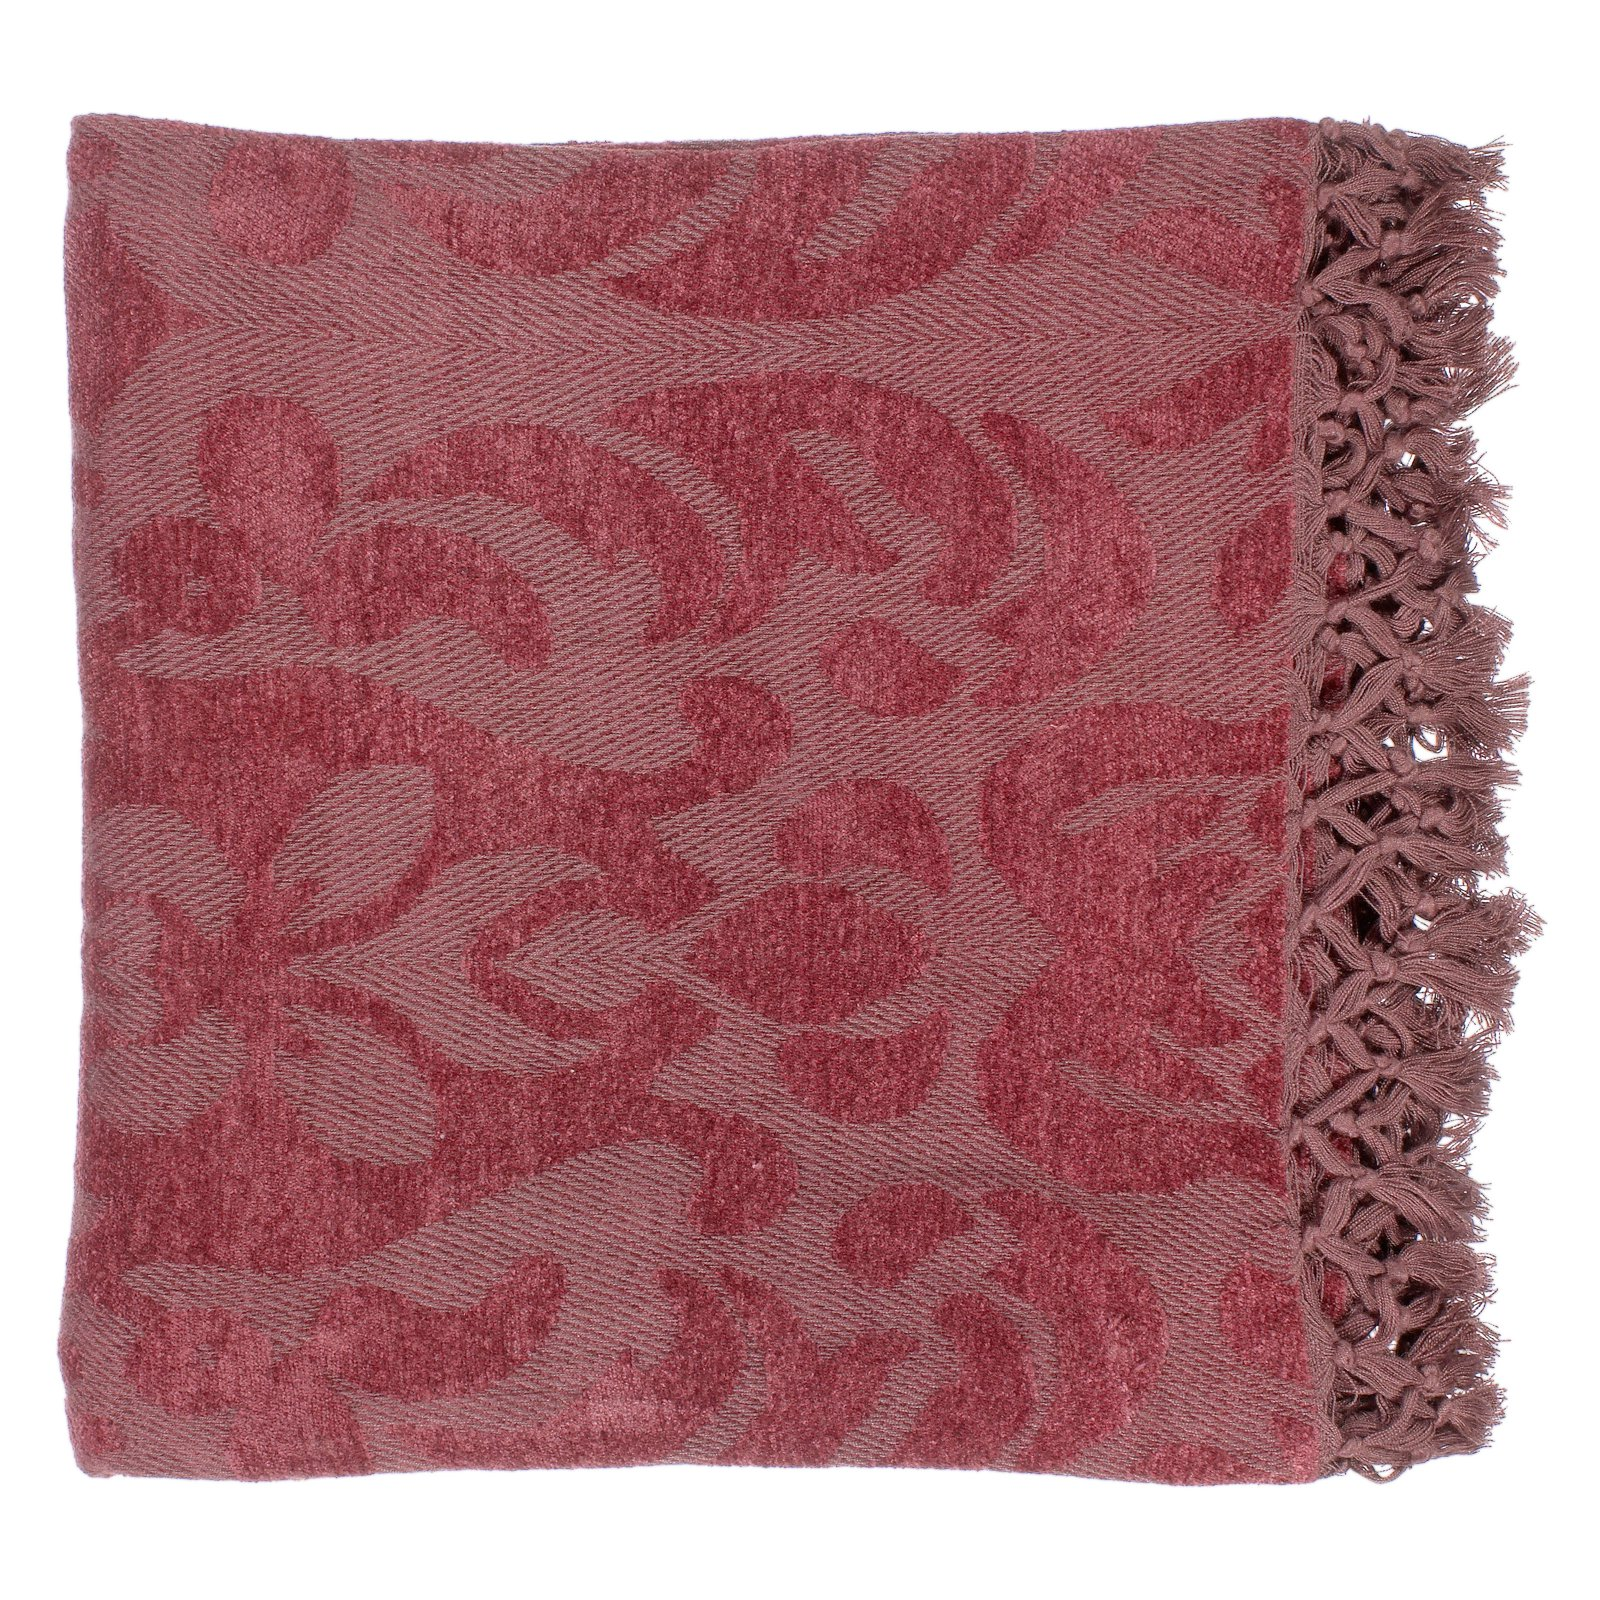 Surya Tristen Viscose Throw Blanket